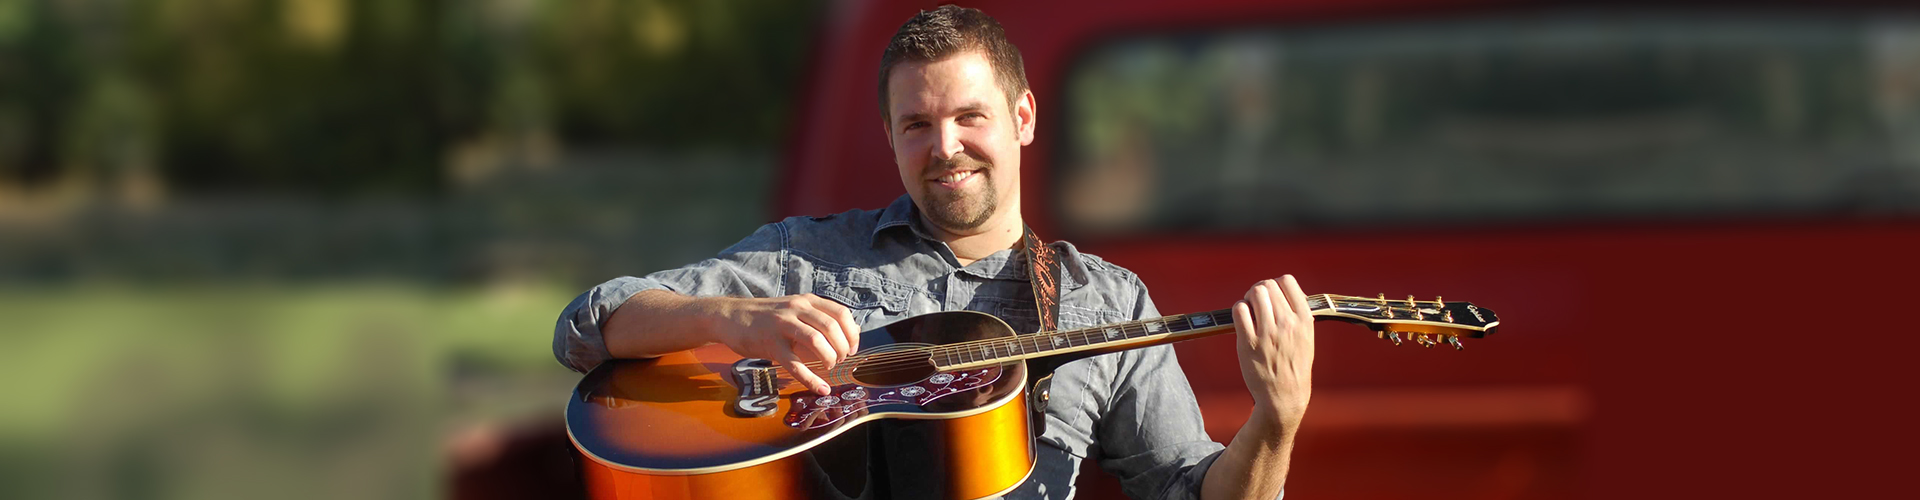 Nathan Osmond playing guitar with blurred truck in background